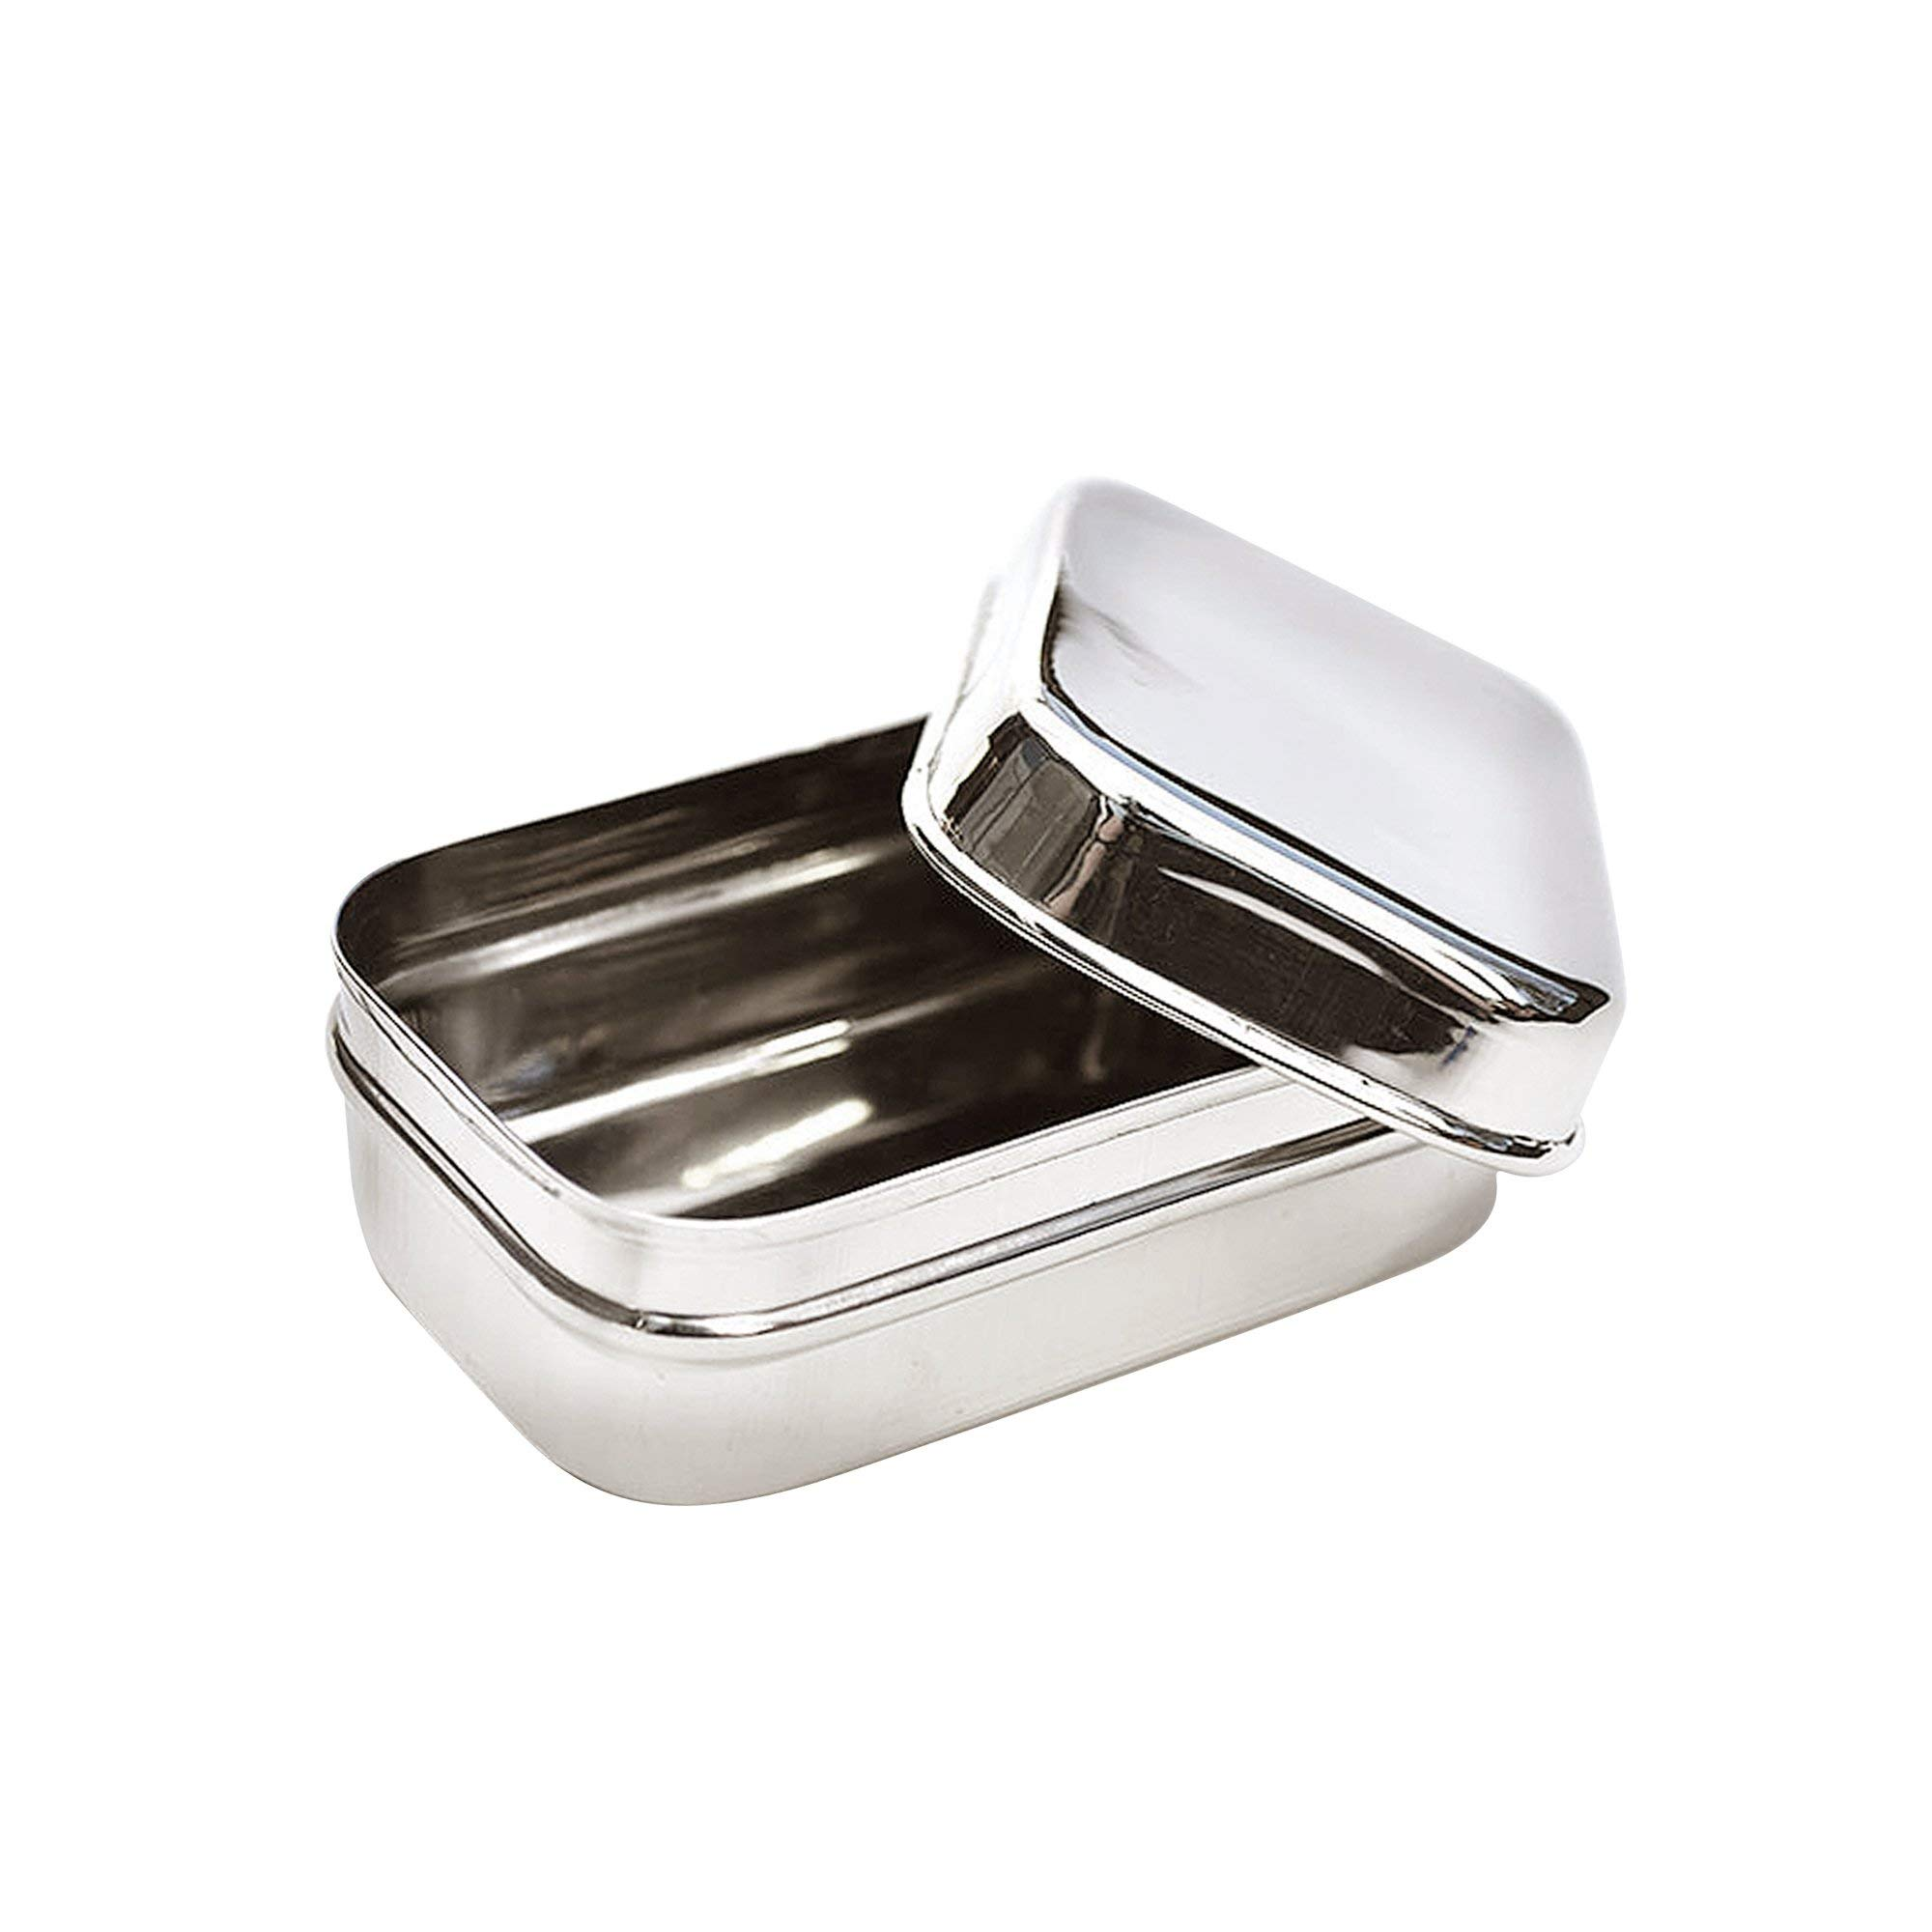 Ecolunchbox Stainless Steel Food Storage Container, Snack Pod